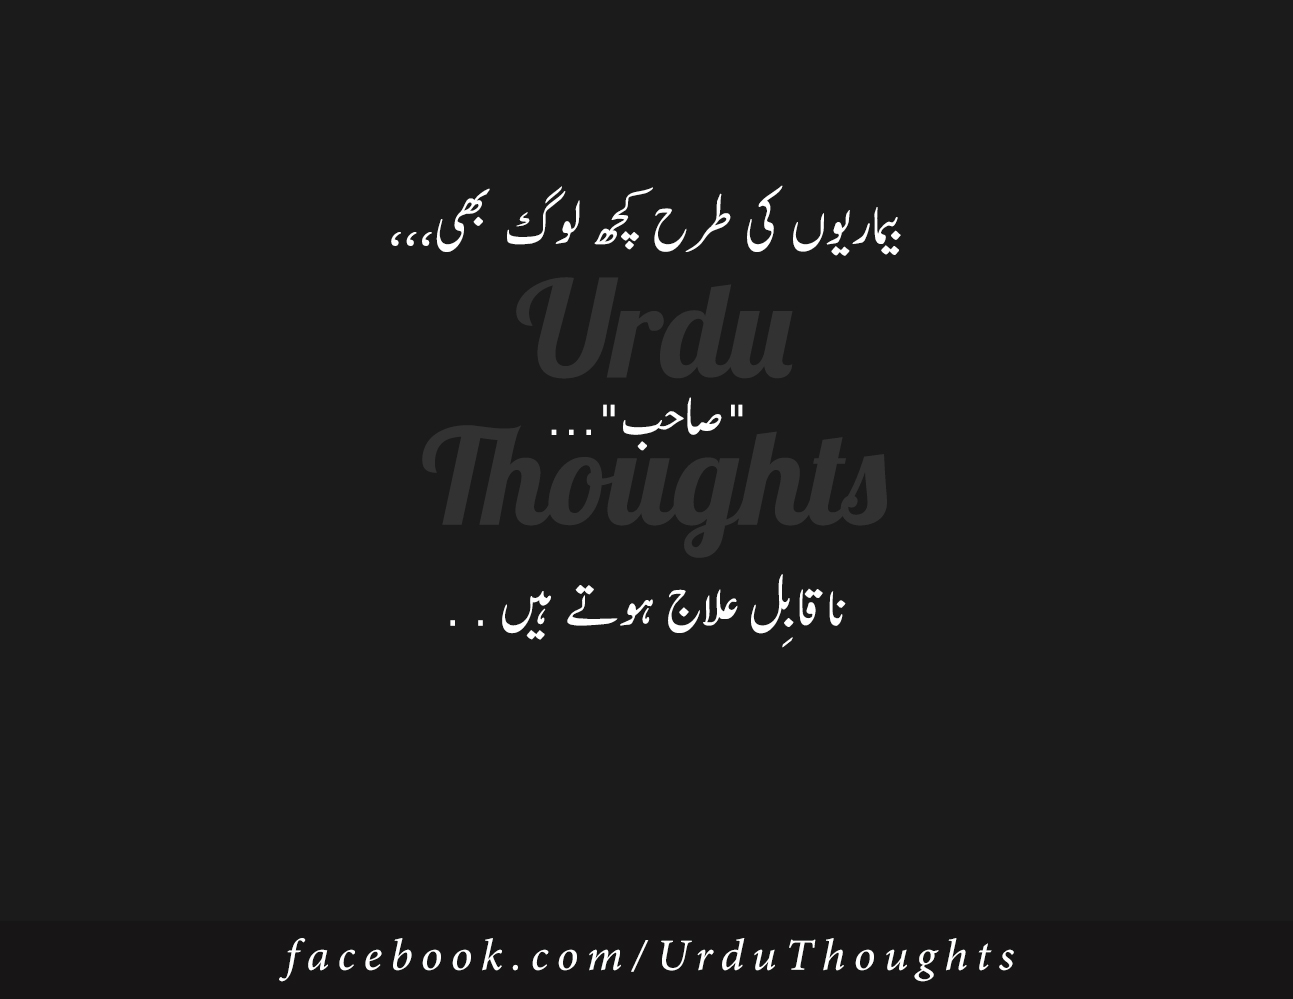 Funny Images Photos Urdu Jokes Images Urdu Thoughts